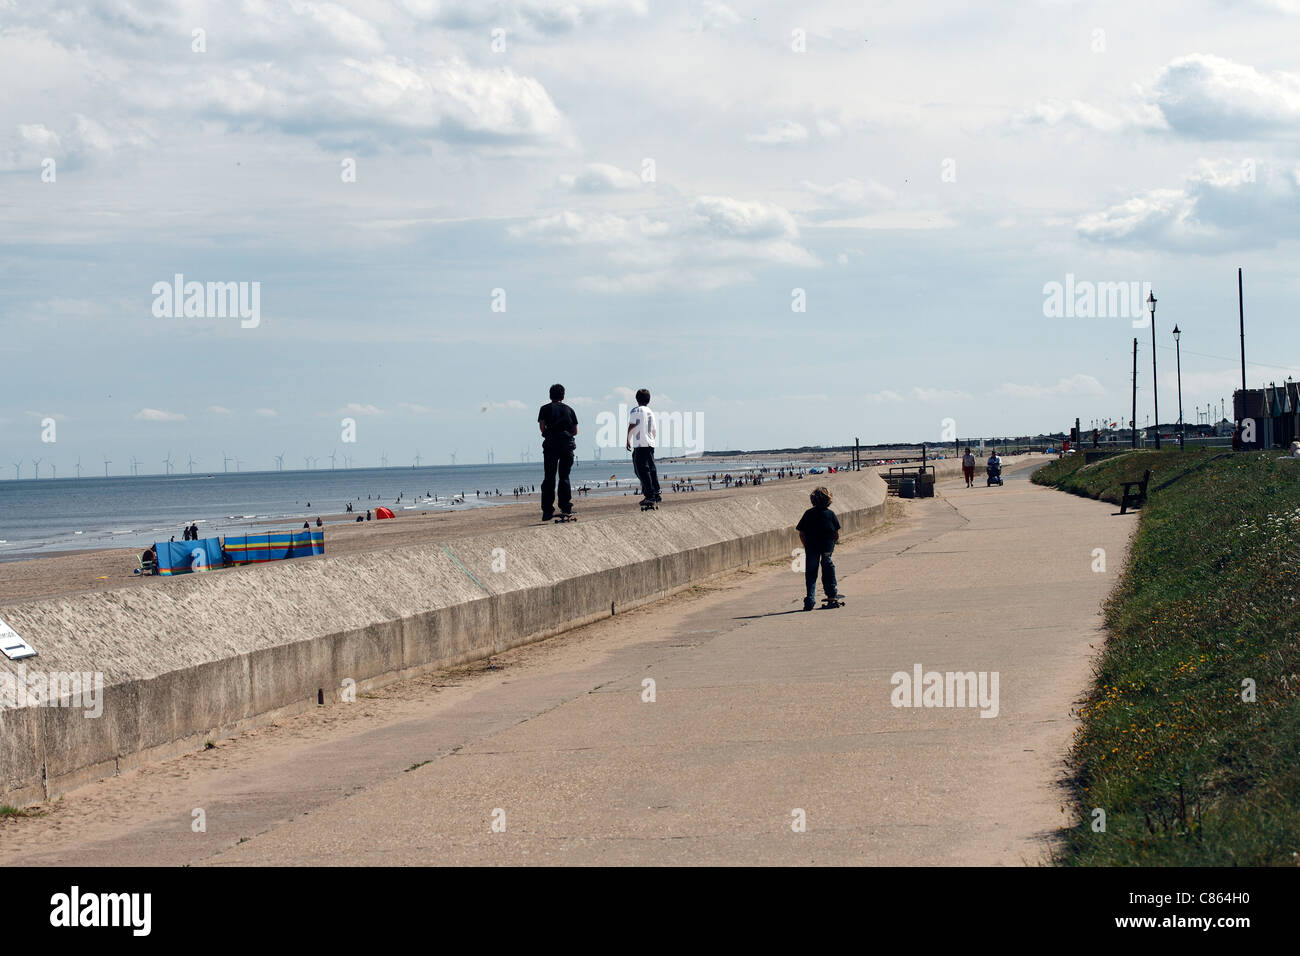 The beach at Sutton-on-Sea Mablethorpe to Sutton on Sea cycleway - Stock Image